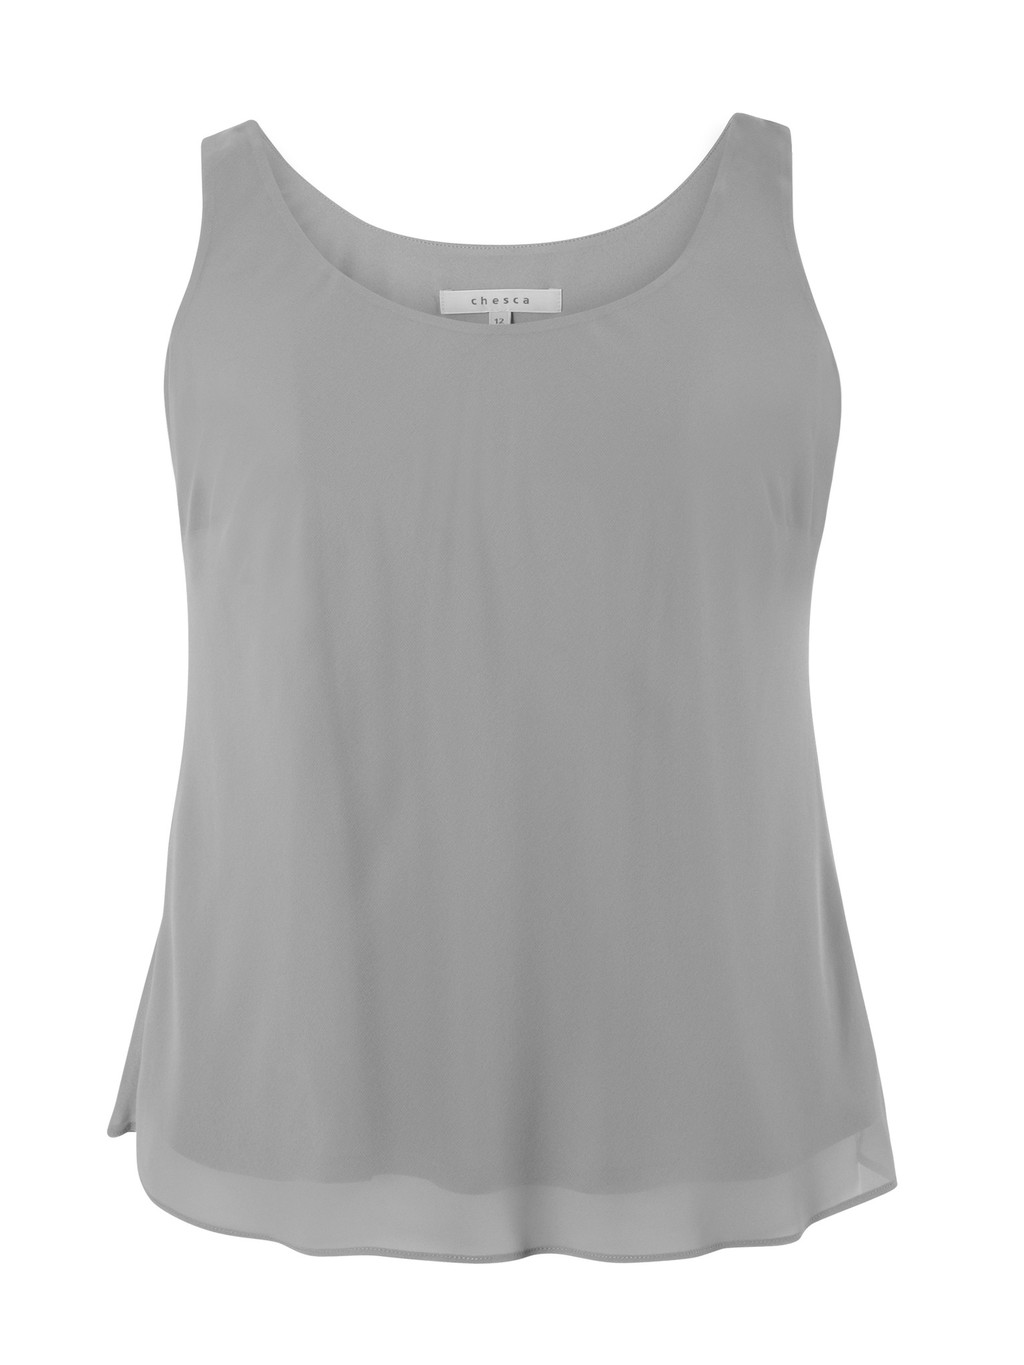 Pale Grey Jersey Lined Chiffon Camisole - sleeve style: standard vest straps/shoulder straps; pattern: plain; style: vest top; predominant colour: mid grey; occasions: casual; length: standard; neckline: scoop; fibres: polyester/polyamide - 100%; fit: body skimming; sleeve length: sleeveless; texture group: sheer fabrics/chiffon/organza etc.; pattern type: fabric; season: a/w 2015; wardrobe: basic